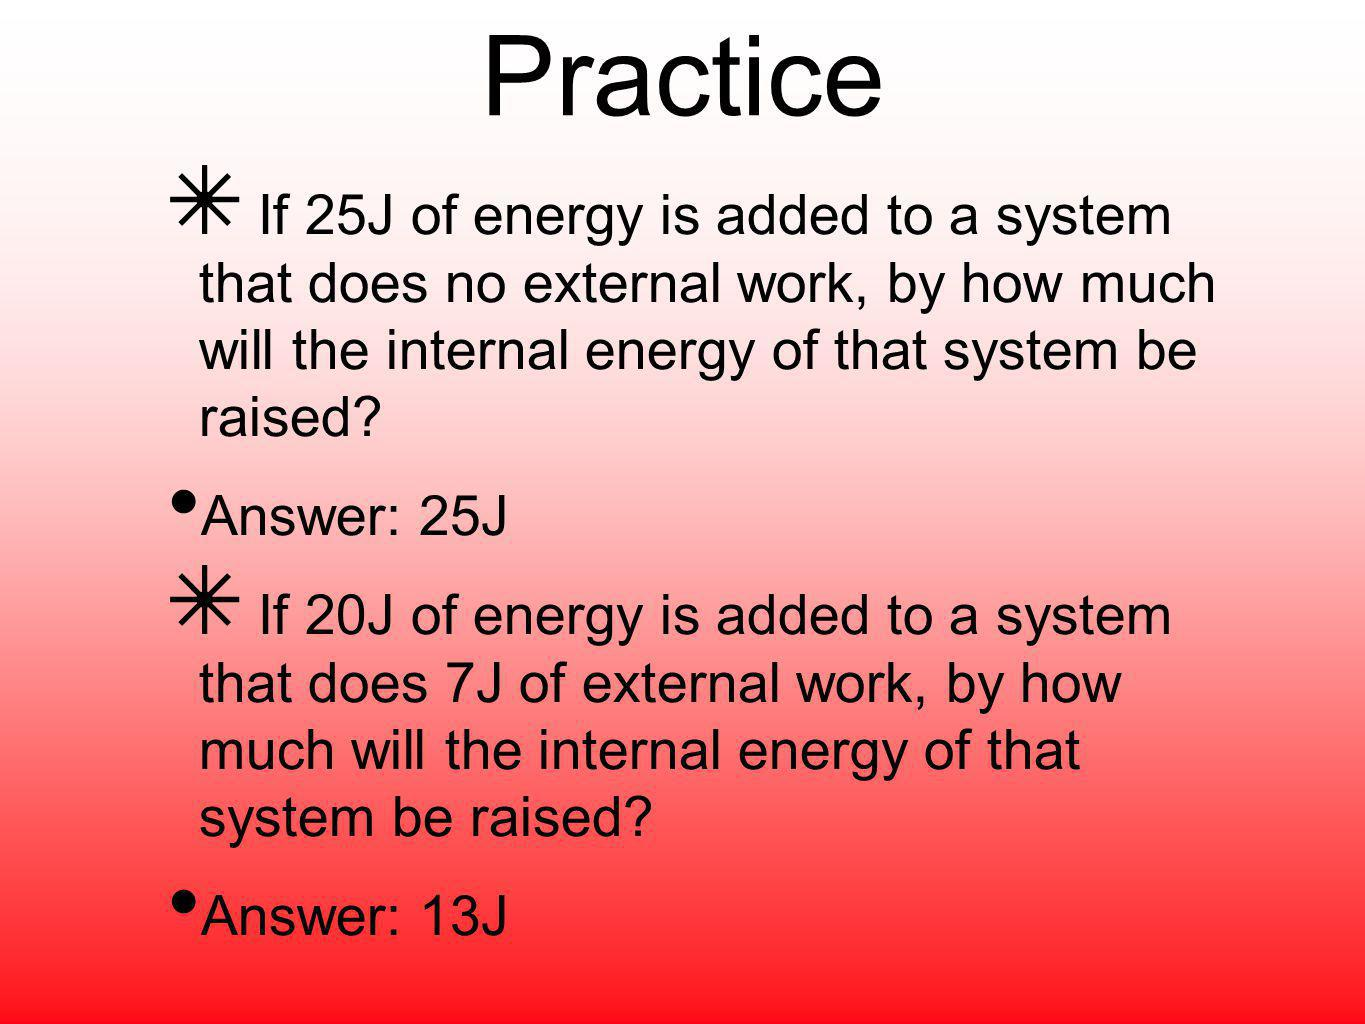 Practice If 25J of energy is added to a system that does no external work, by how much will the internal energy of that system be raised